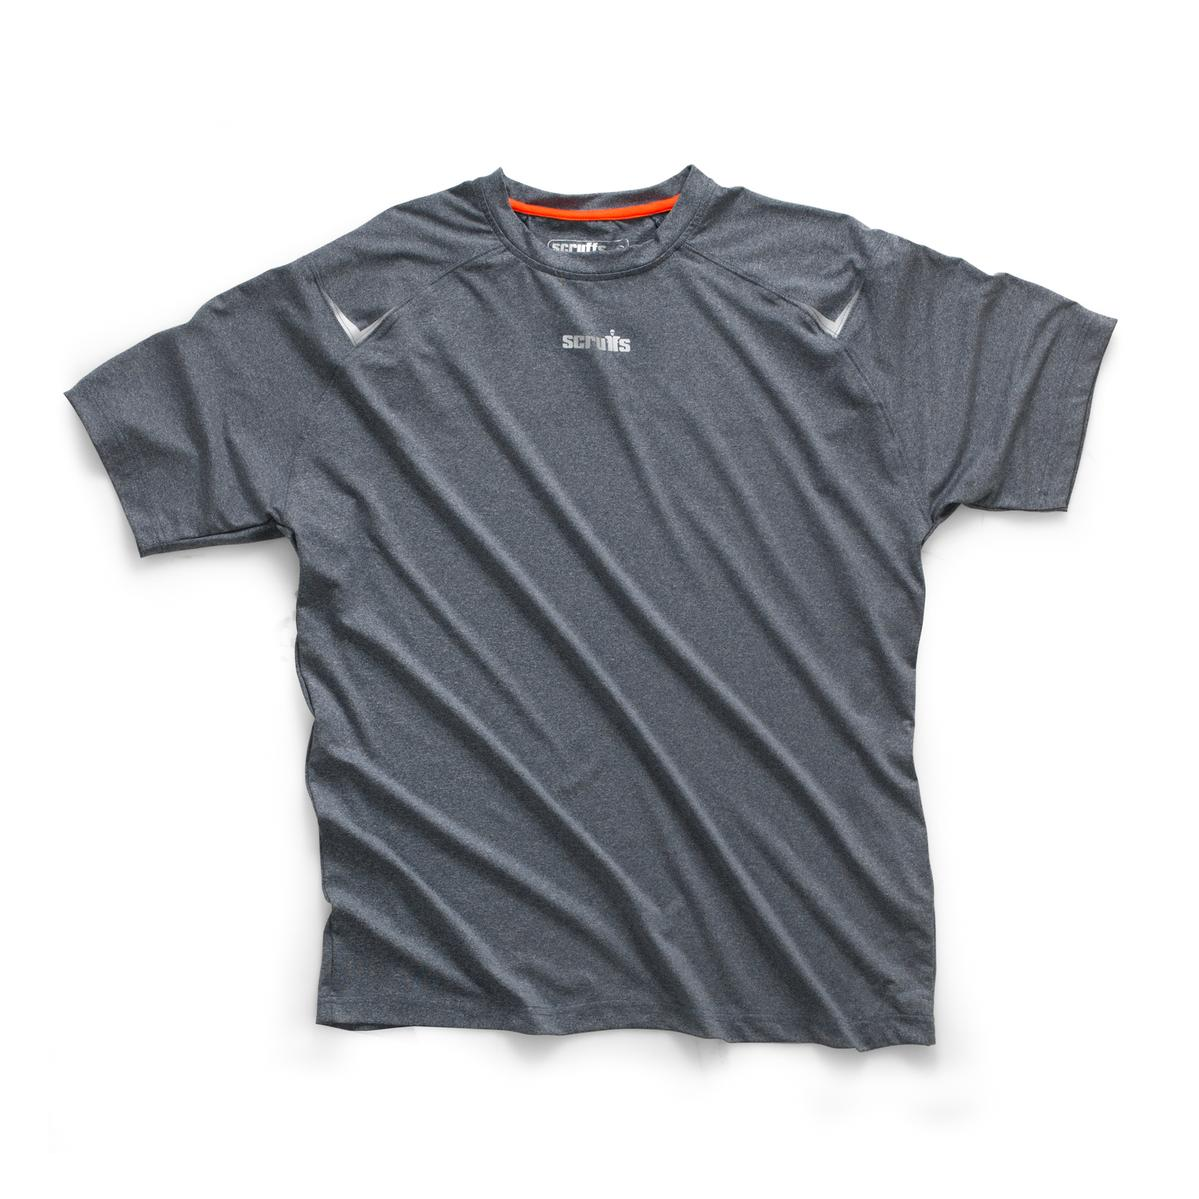 Scruffs Active Poly T-Shirt